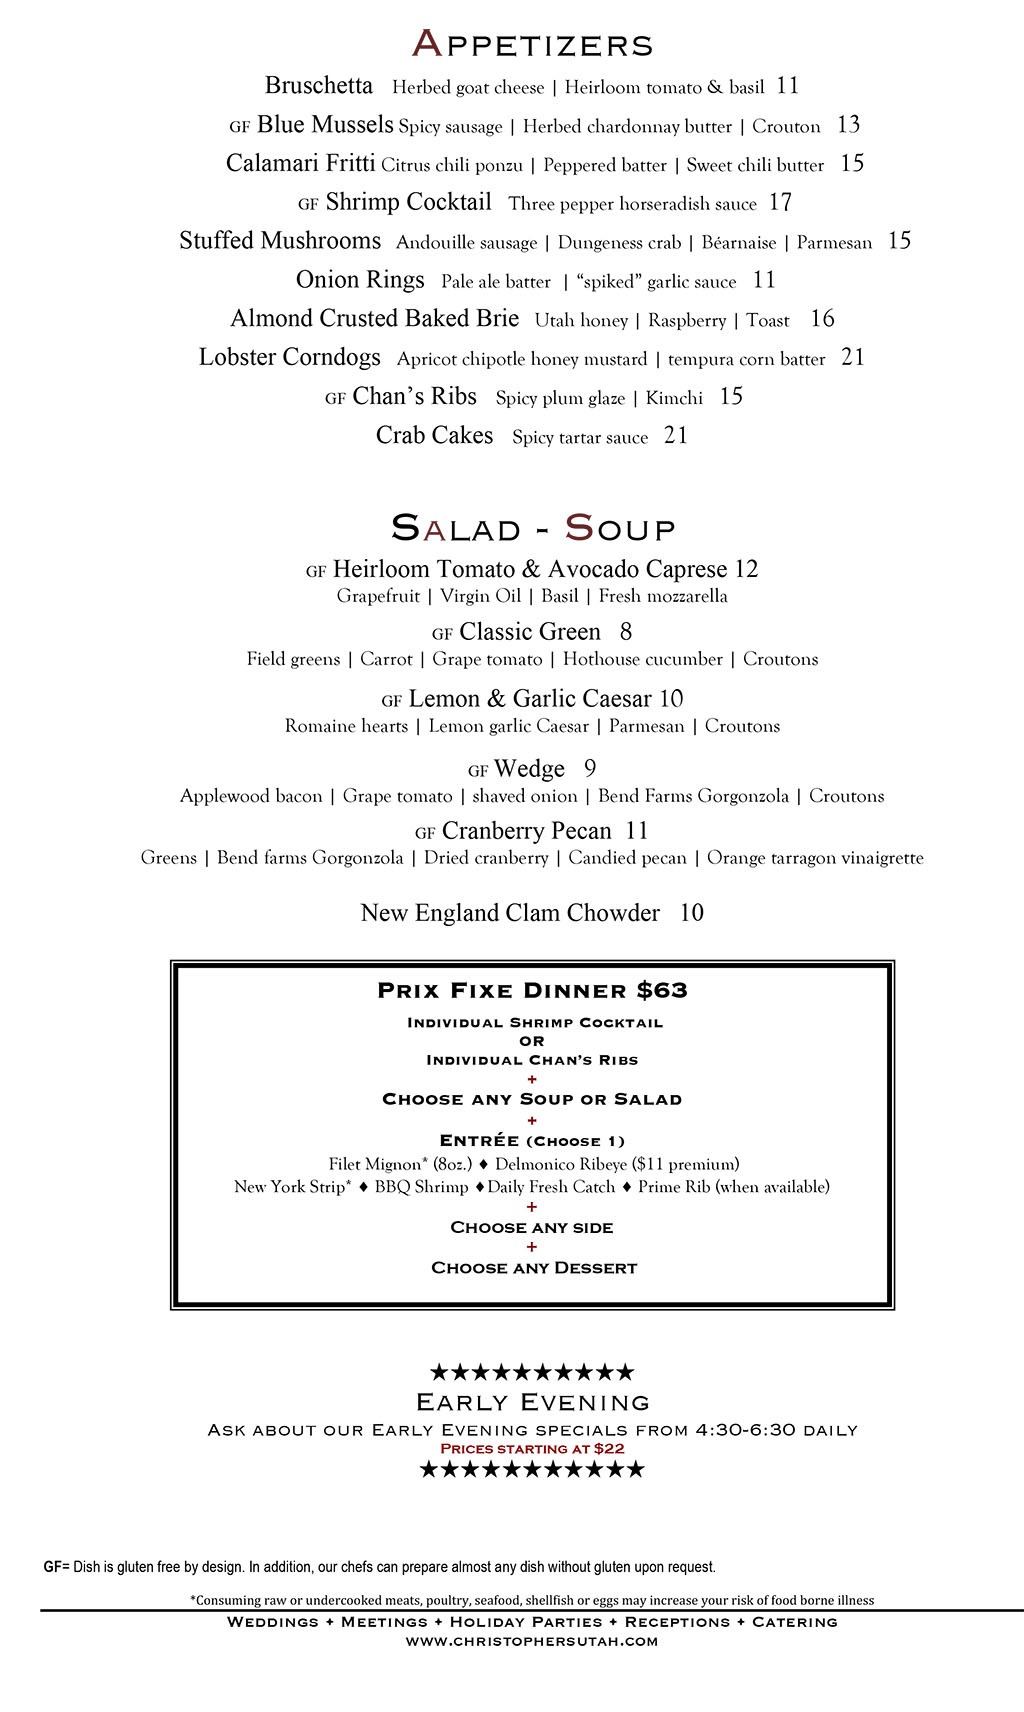 Christophers Steak House menu - steaks, chops, specialties, sides.jpg